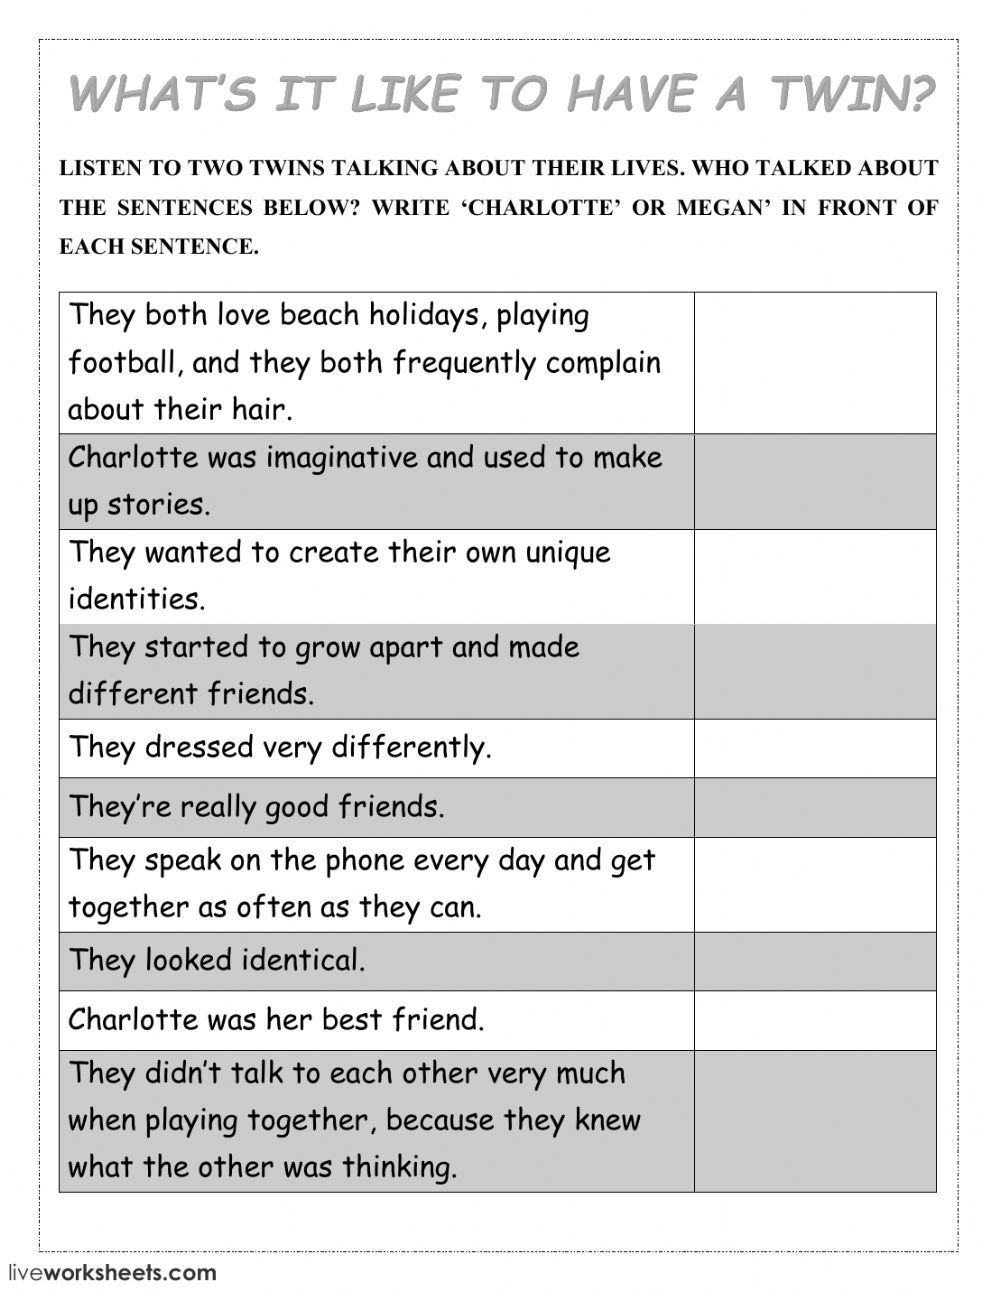 What's it like to have a twin? - Interactive worksheet